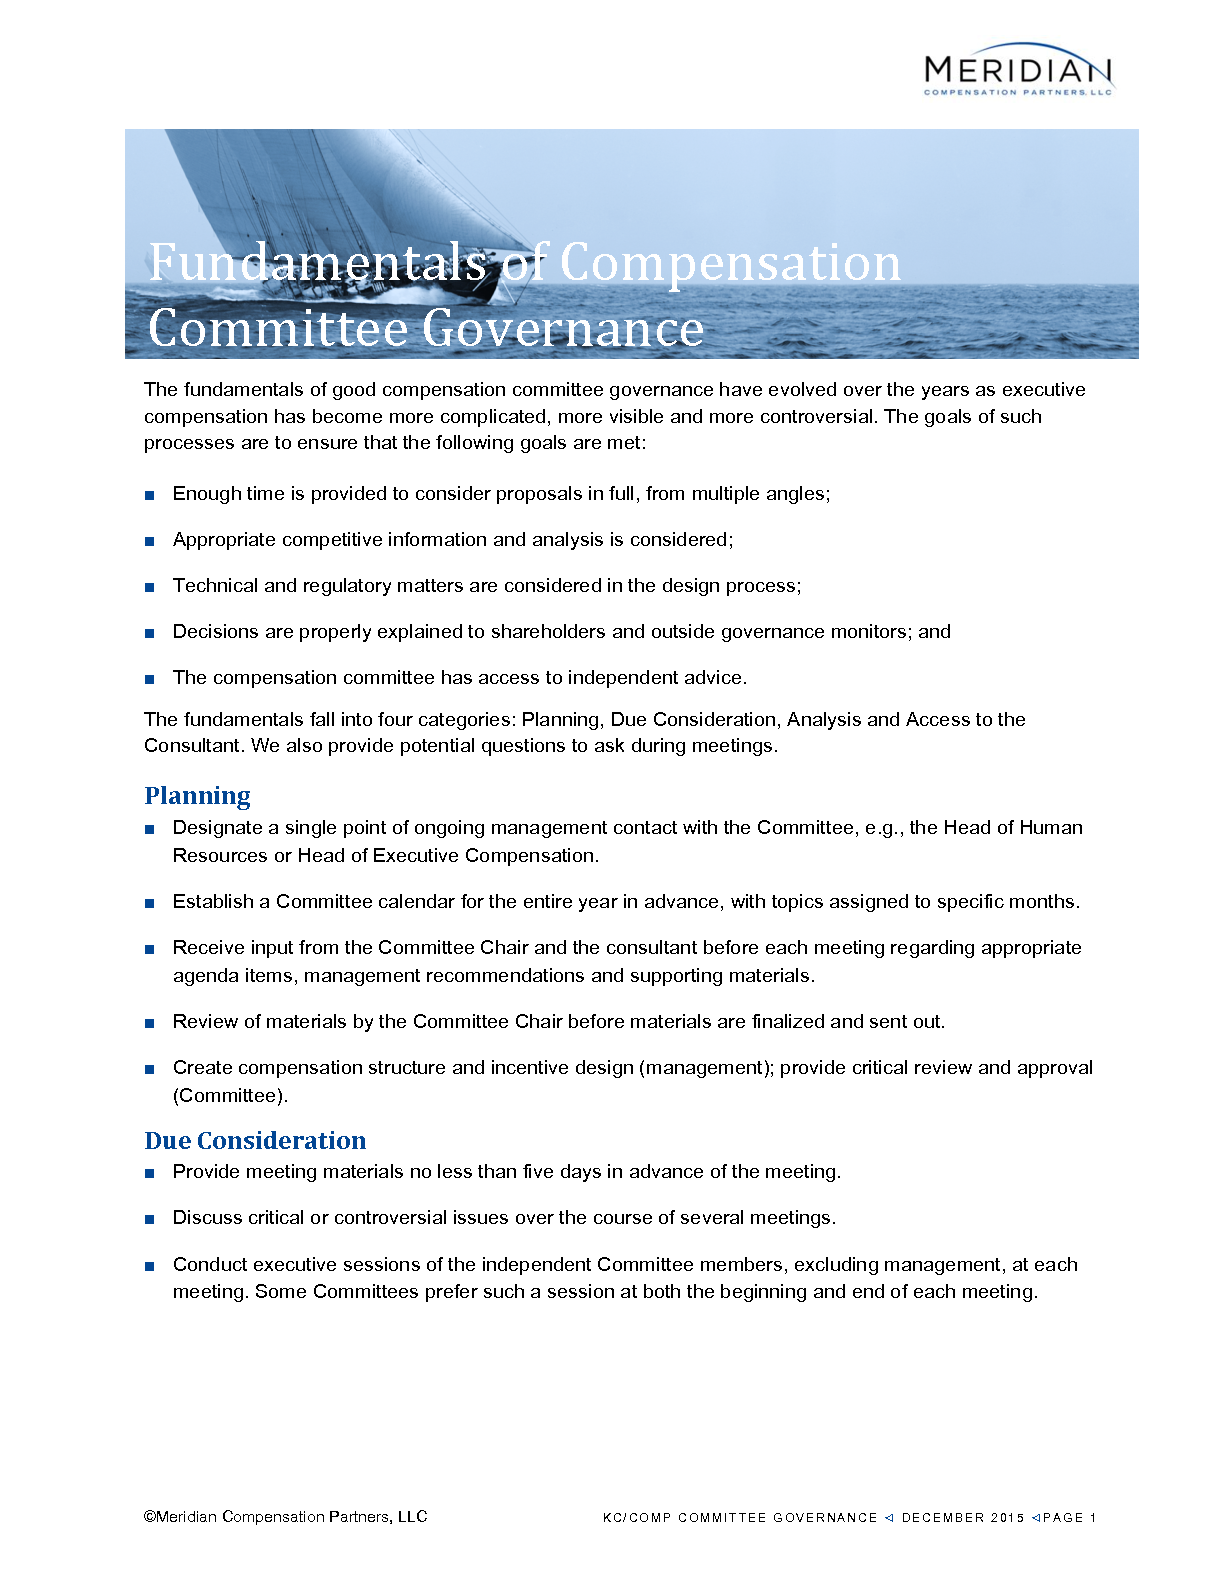 Fundamentals of Compensation Committee Governance (PDF)